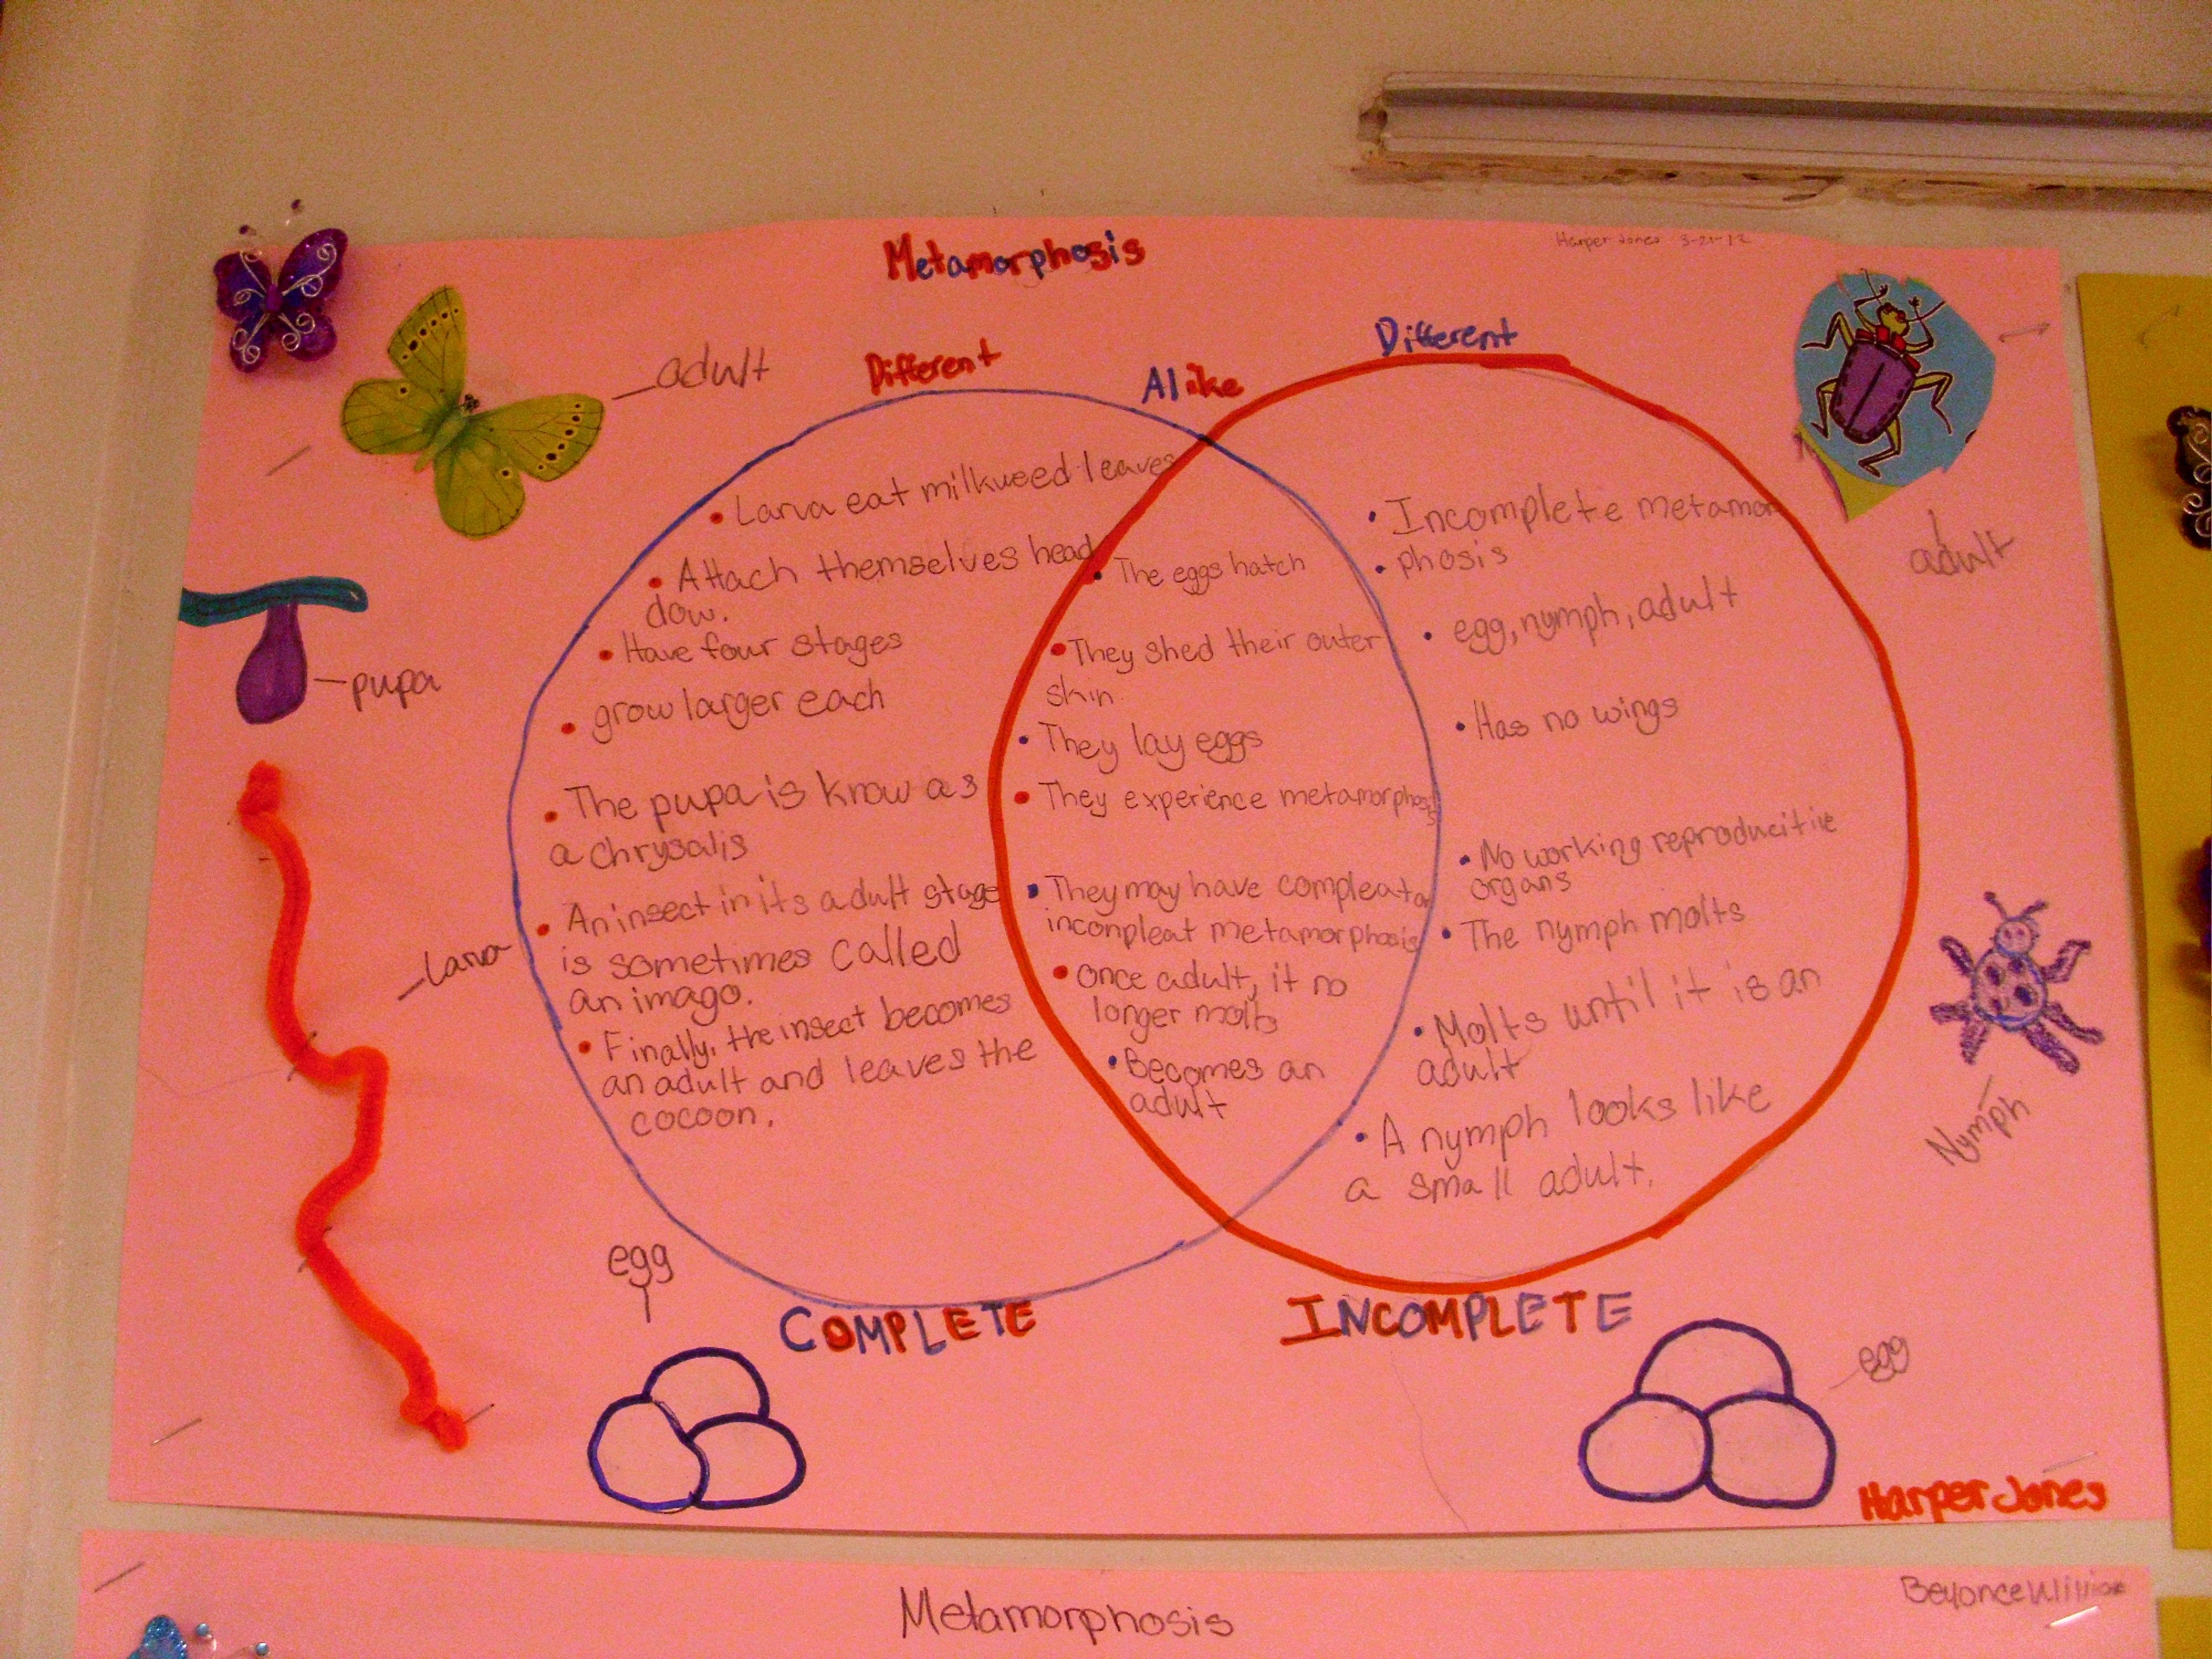 medium resolution of complete and incomplete metamorphosis venn diagram fourth grade science elementary science science education